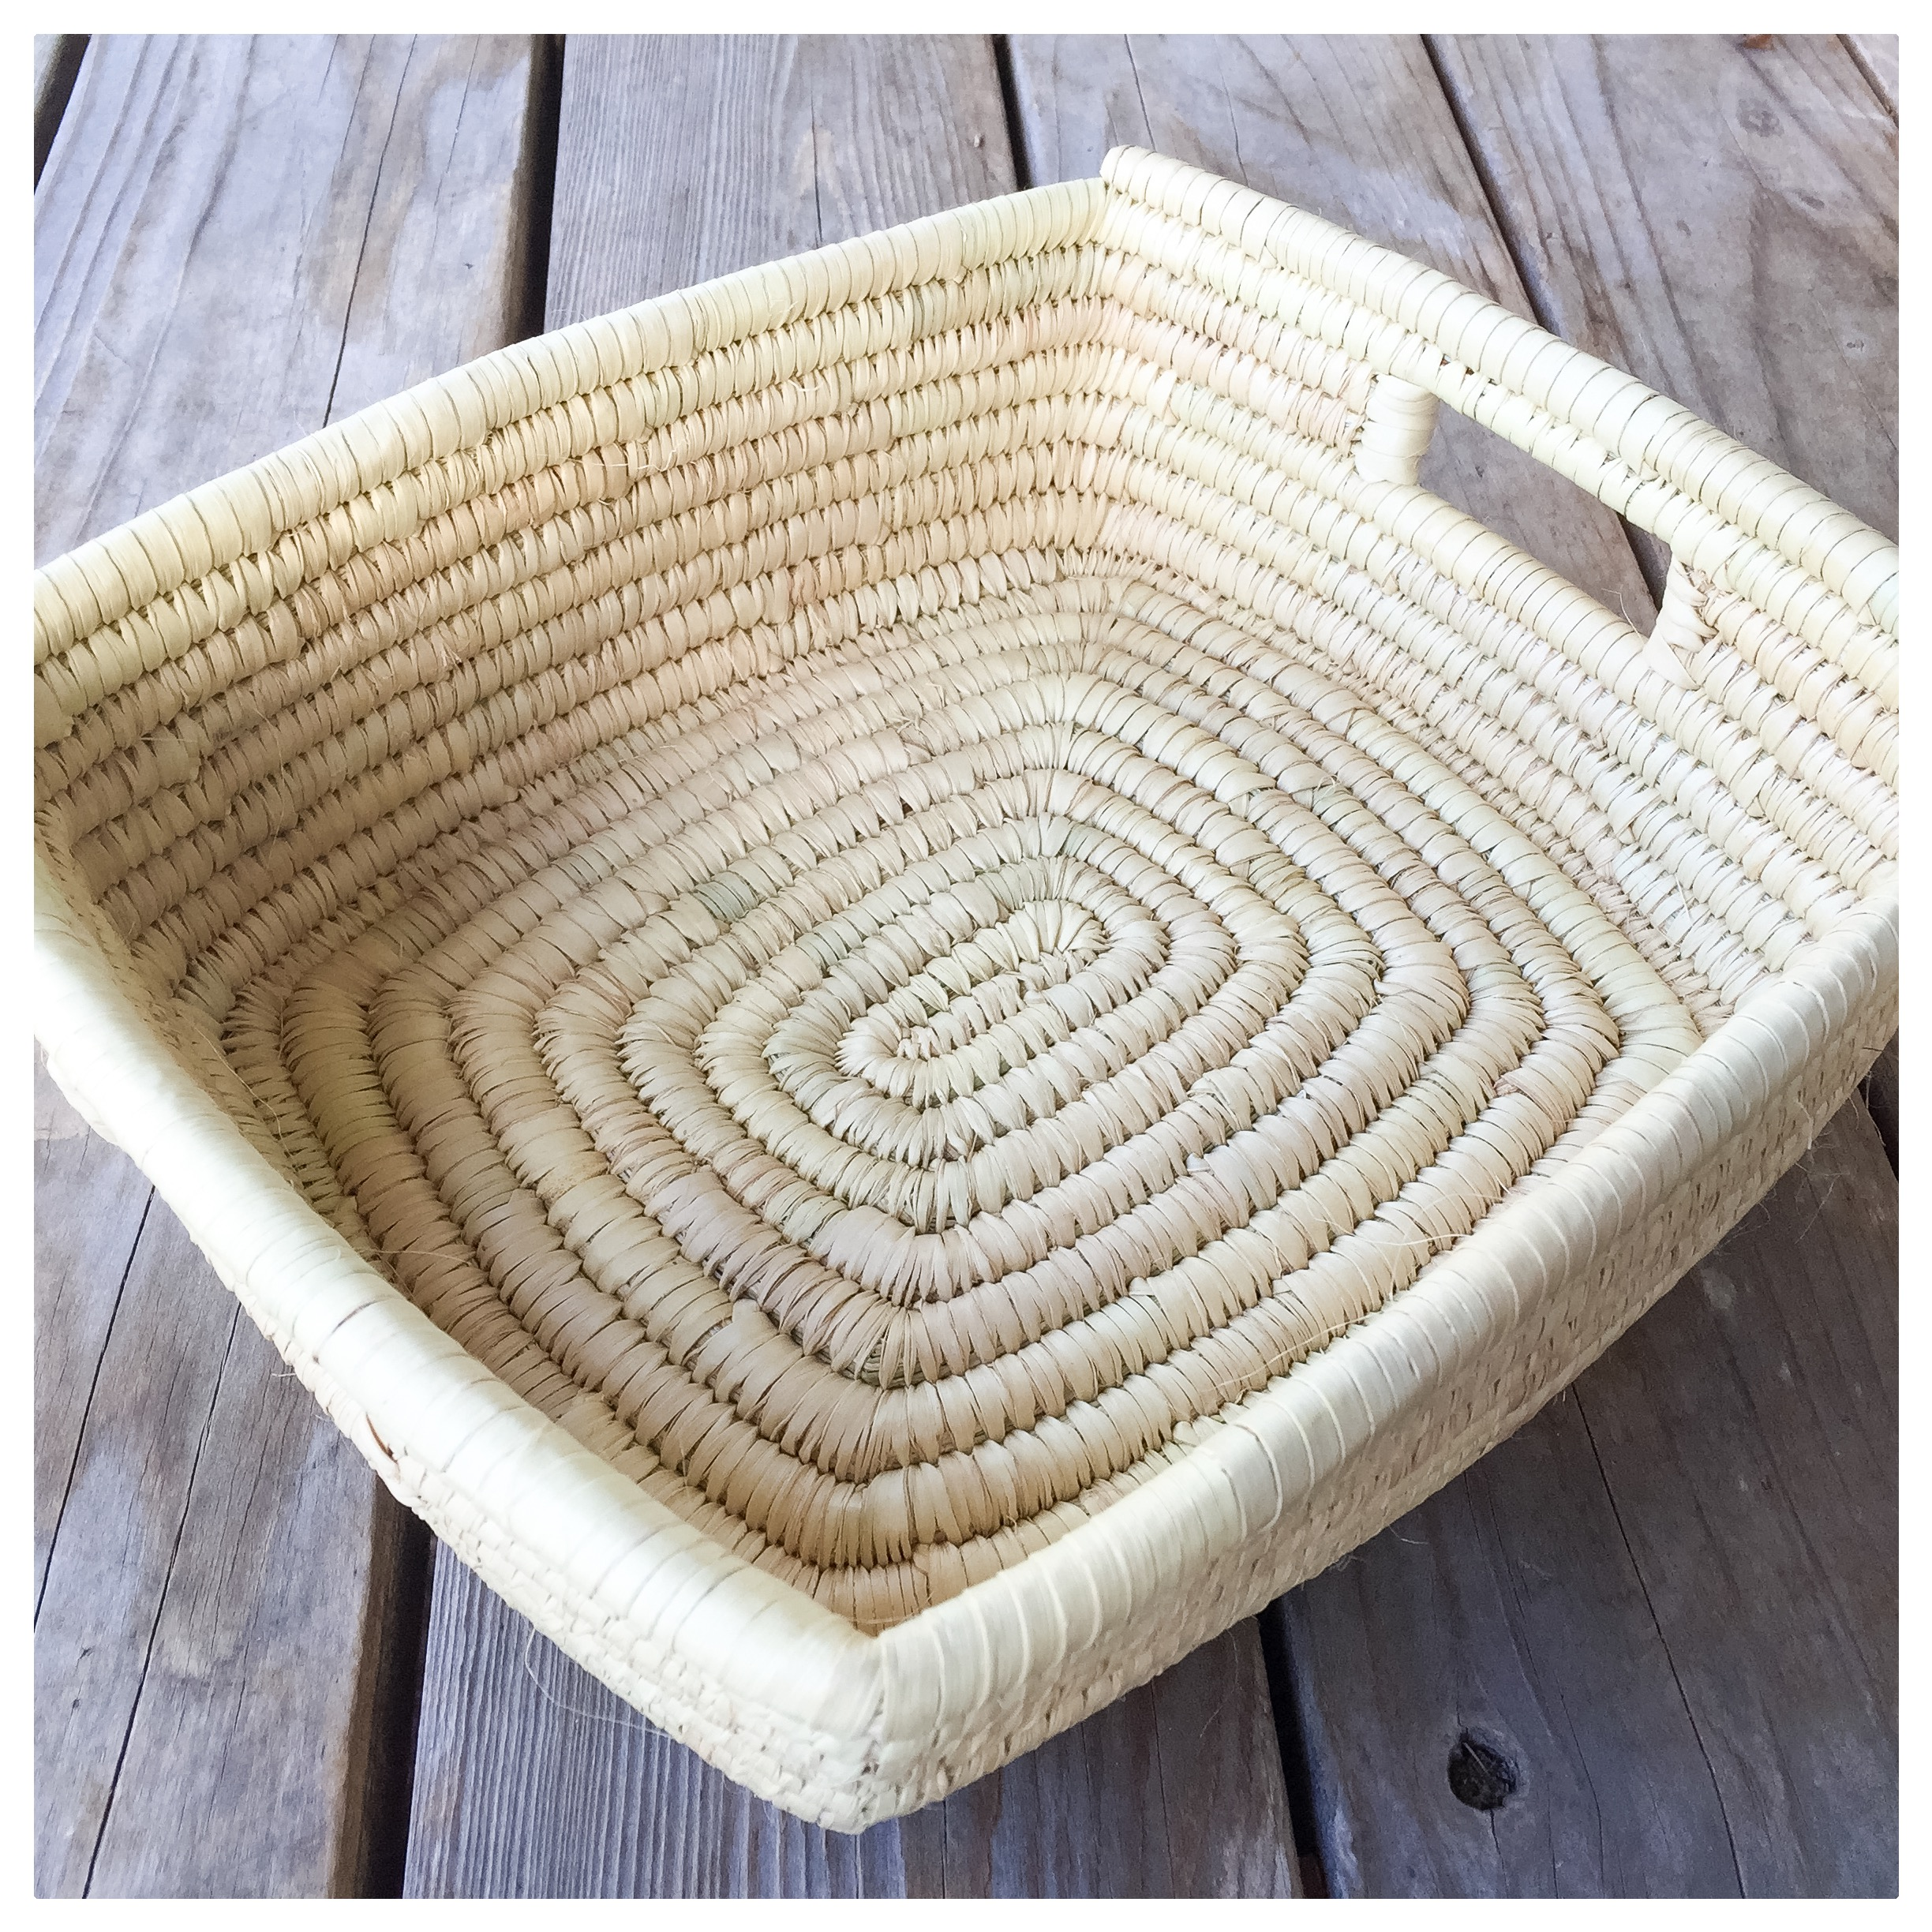 "Made in Tanzania, this basket is both functional and decorative. It measures 11"" x 12"" and is made from woven grass."